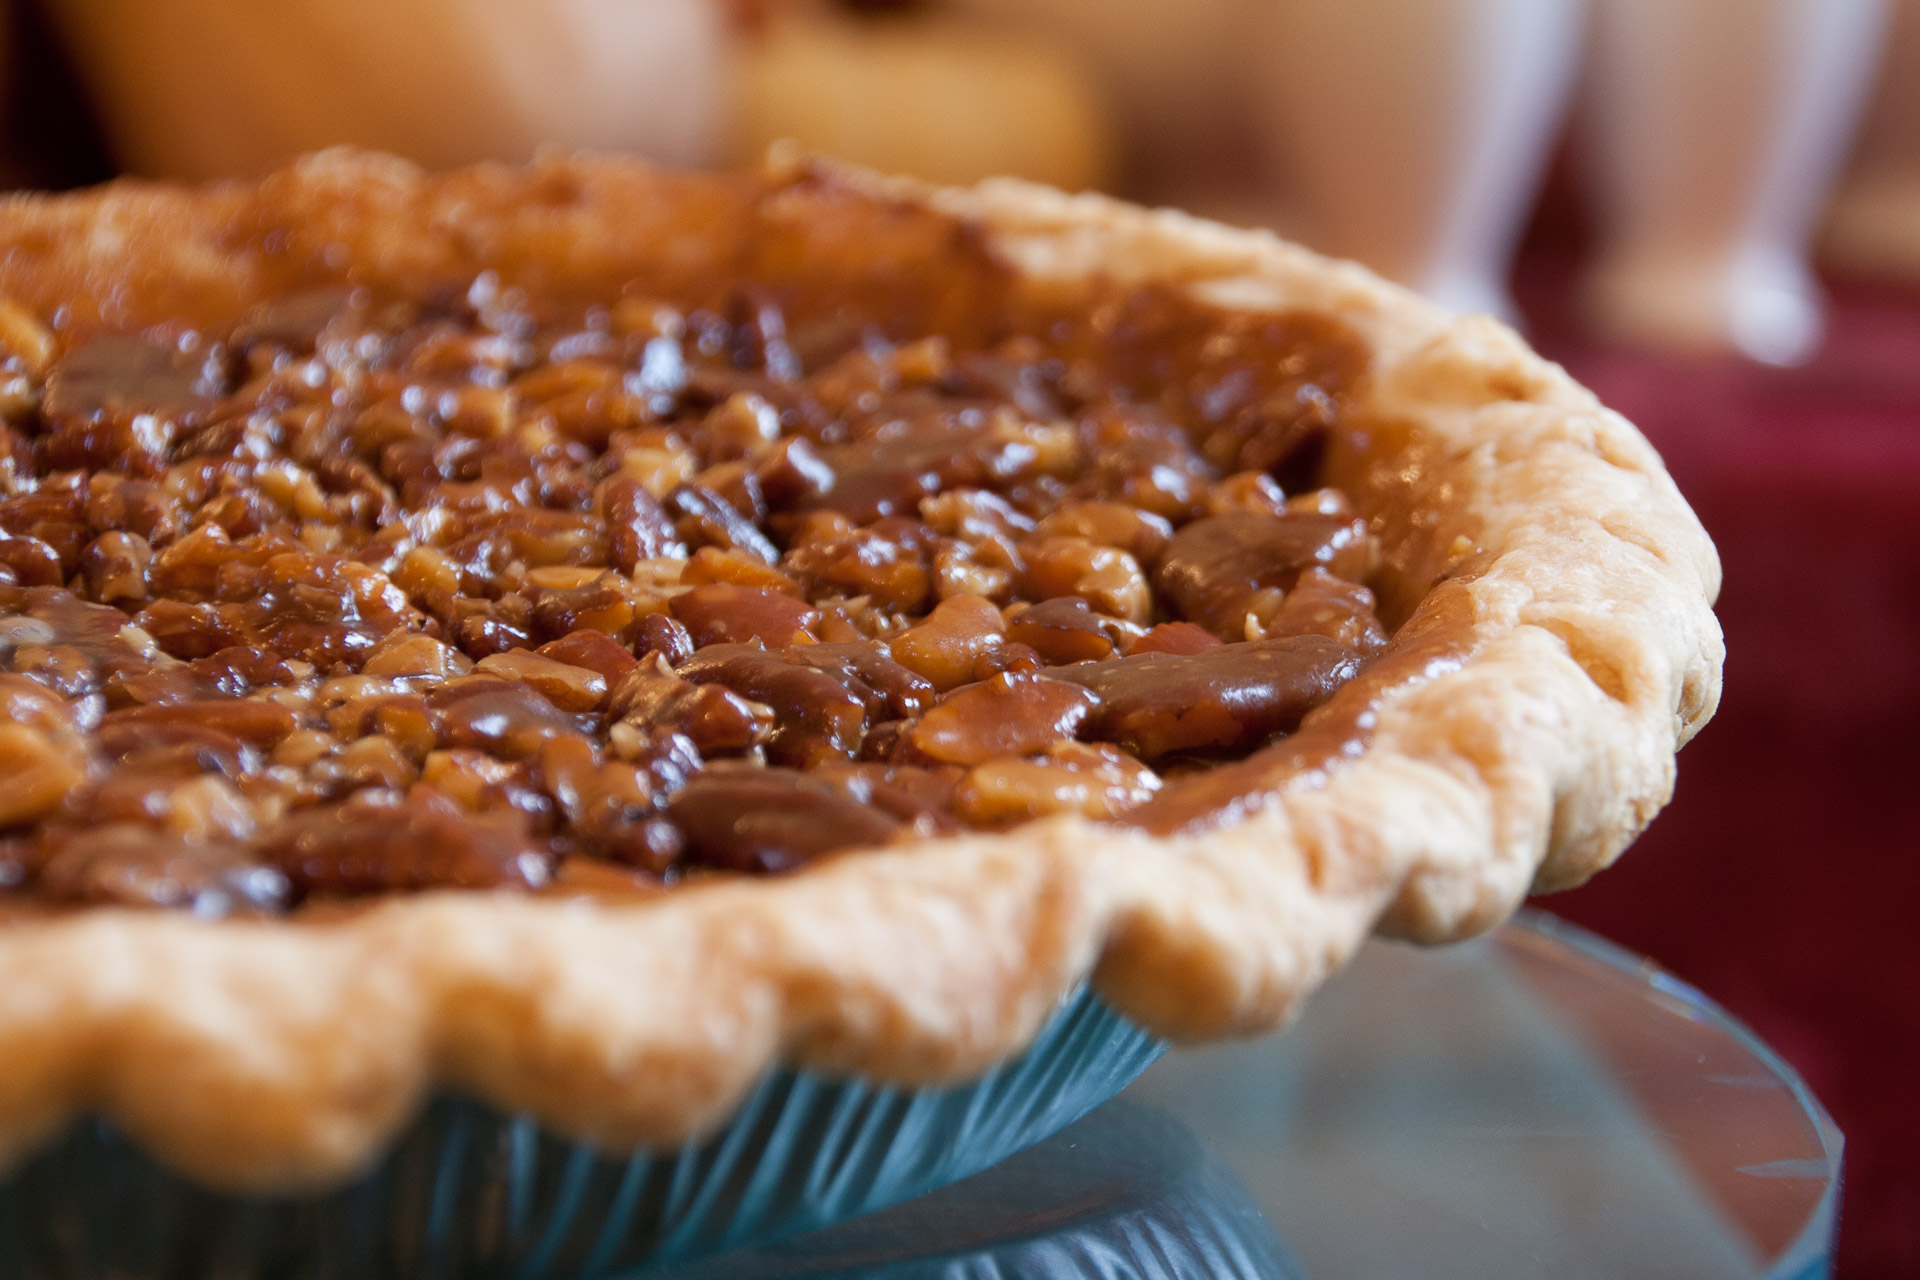 Smoked Nut Pie